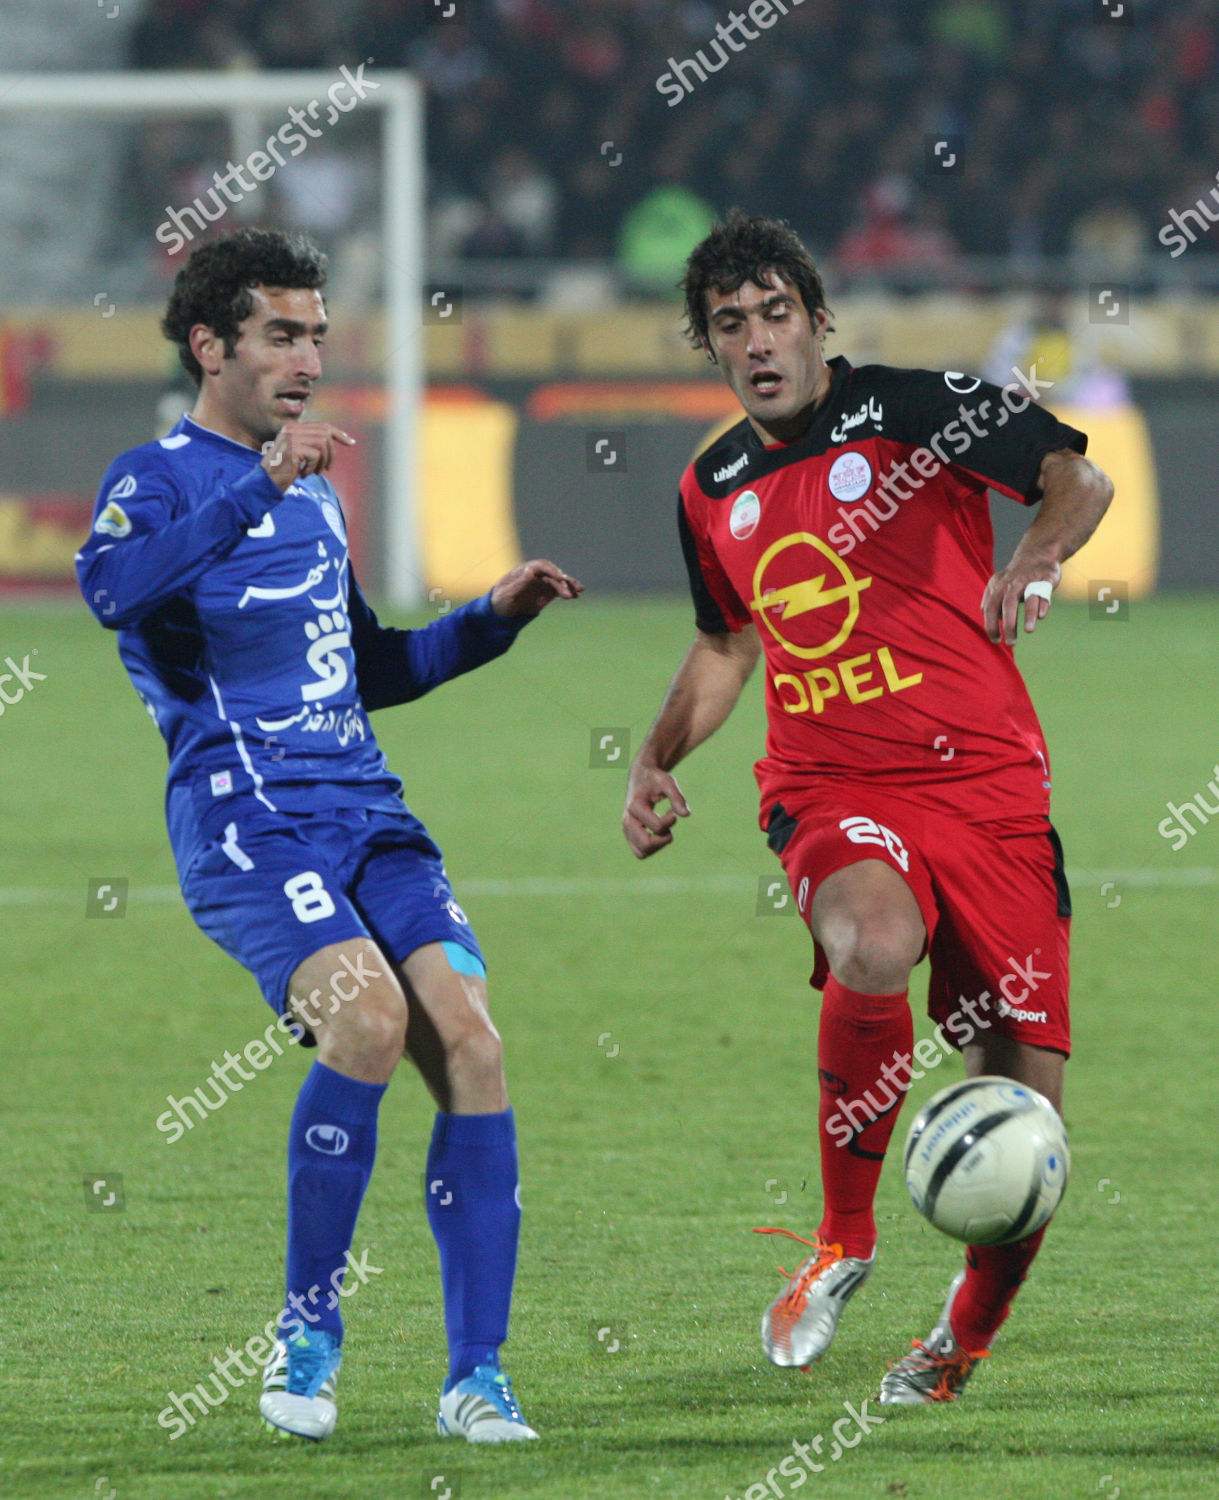 Alireza Nourmohammadi Iranian Persepolis Soccer Team Right Editorial Stock Photo Stock Image Shutterstock